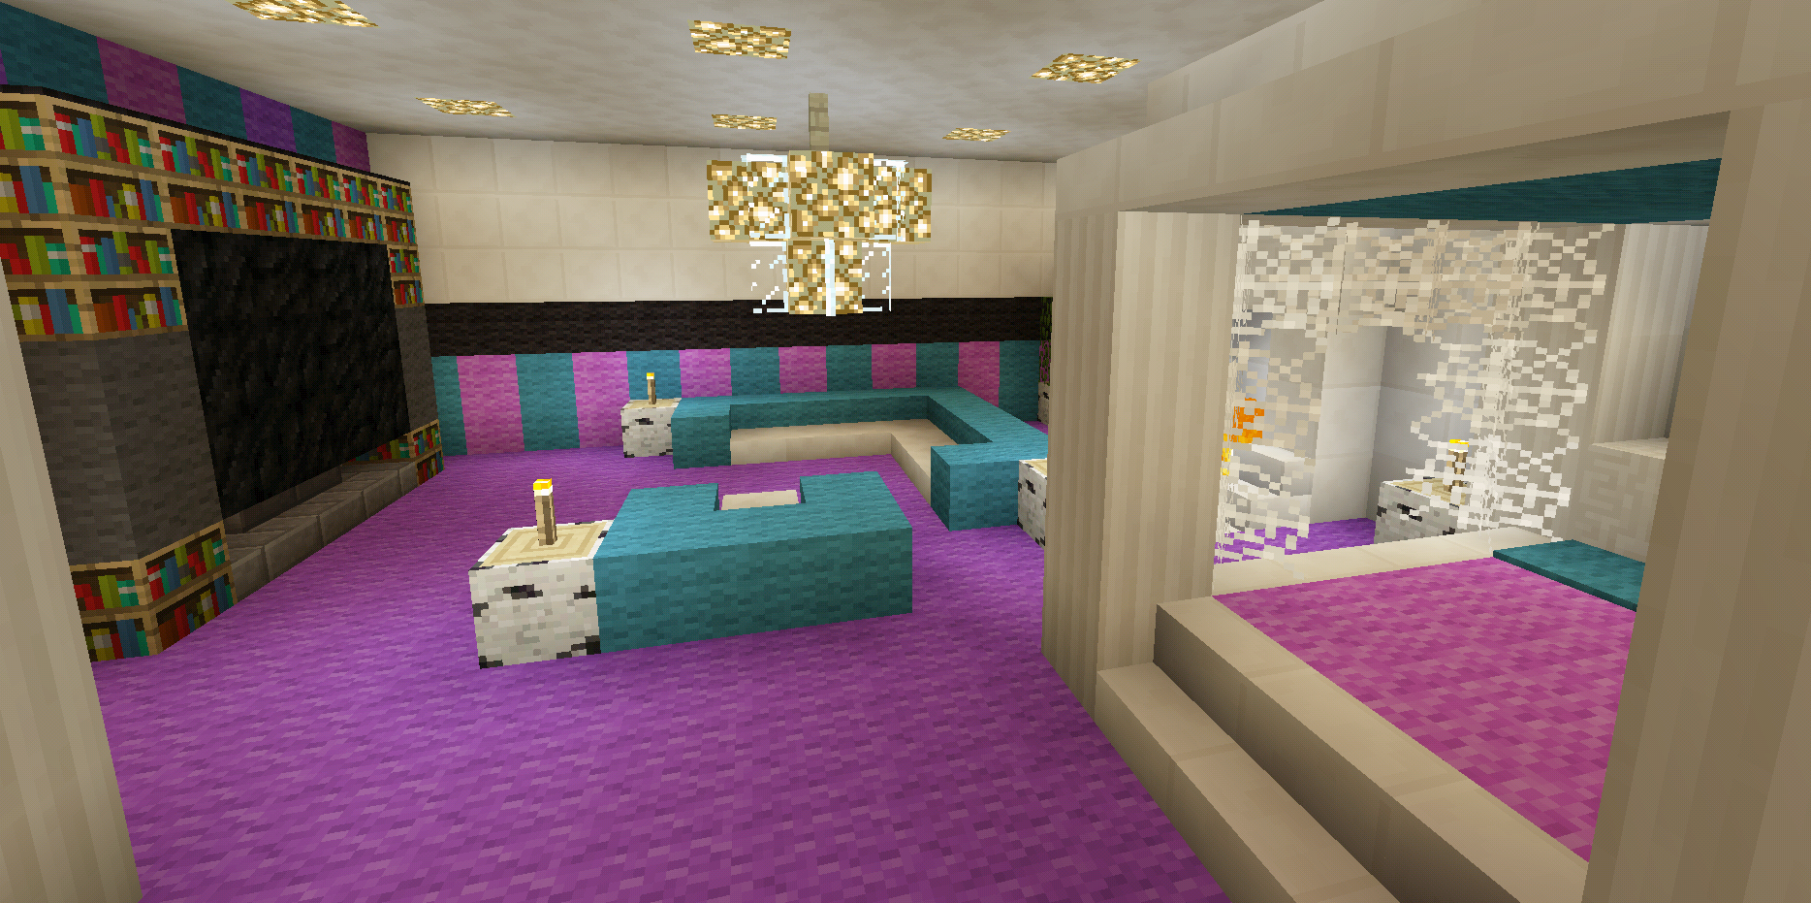 Minecraft Bedroom Pink Girl Purple Wallpaper Wall Design Canopy ..